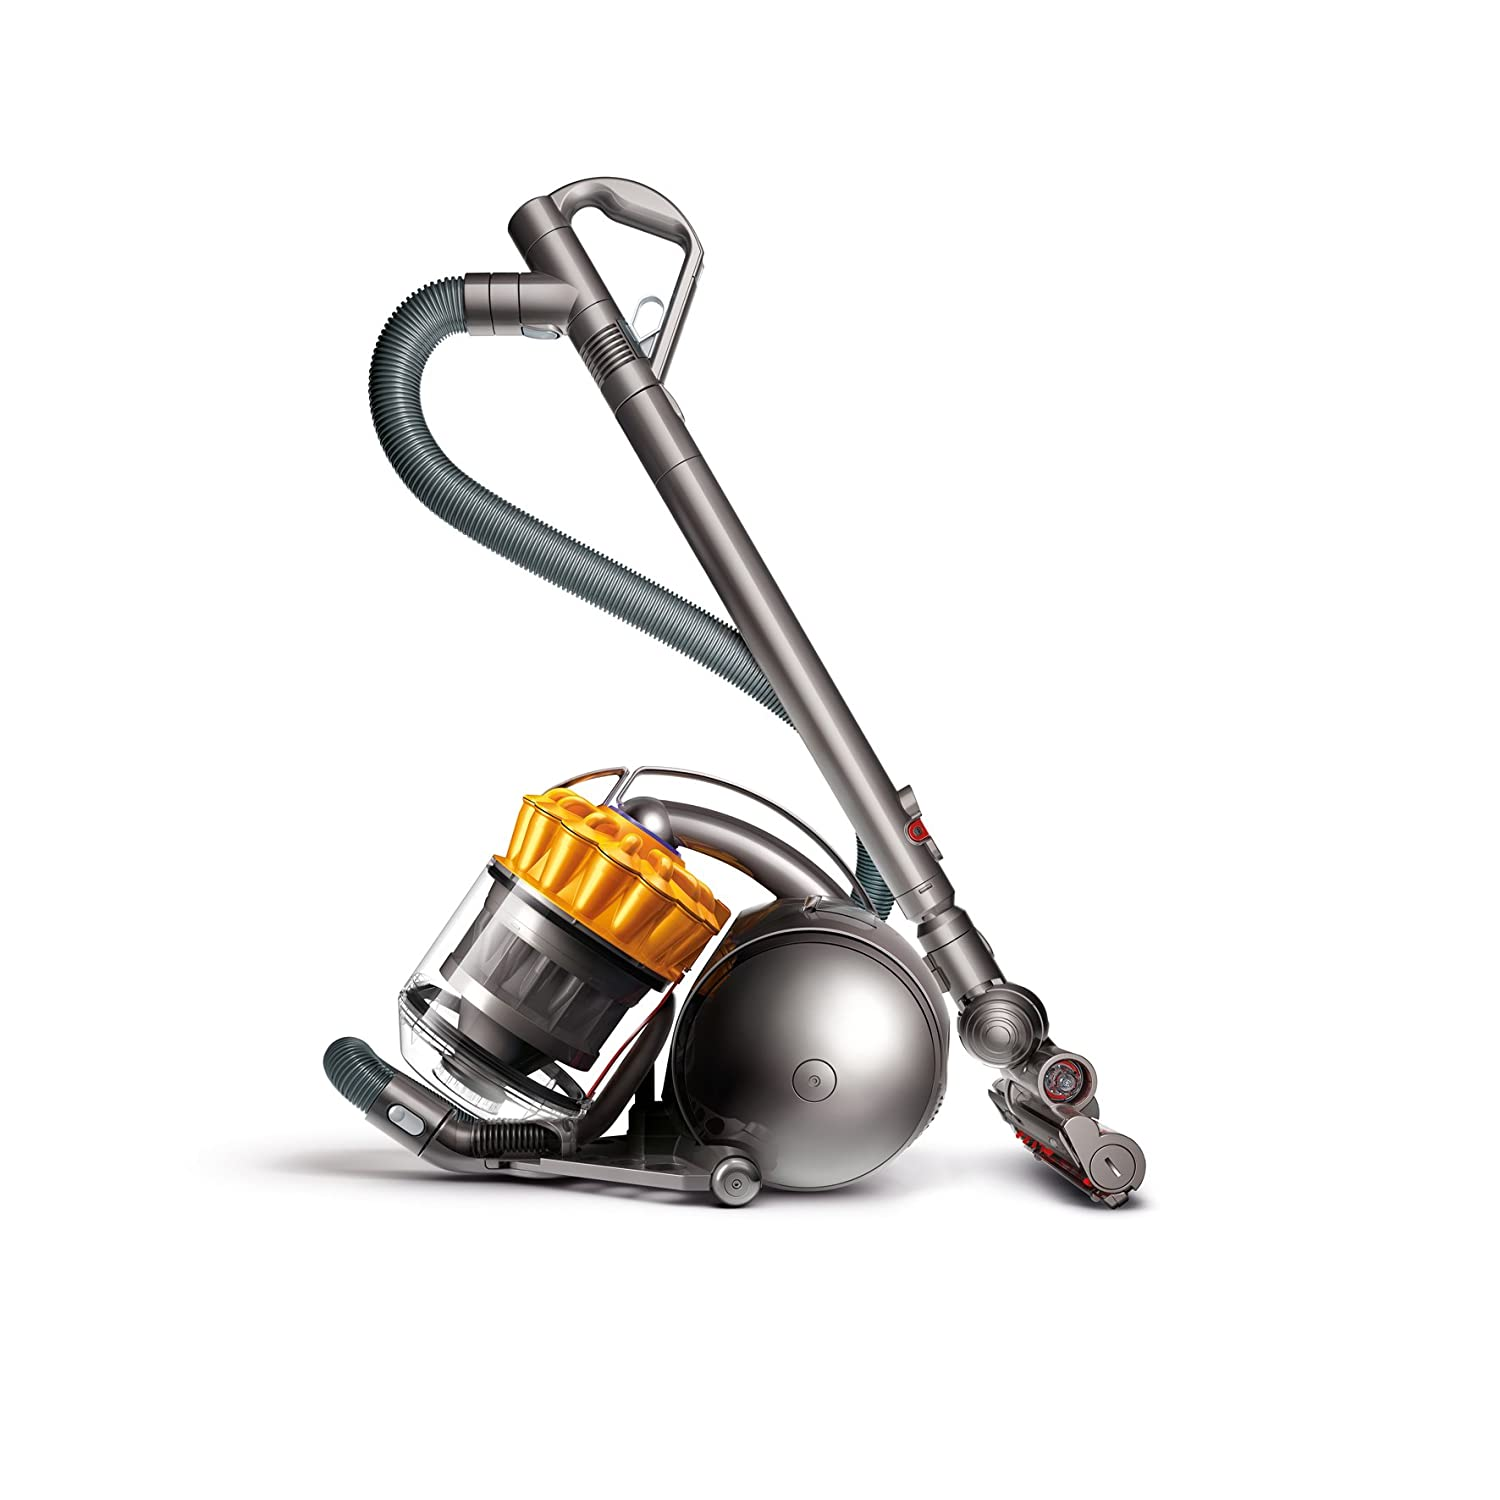 Dyson Ball Multifloor Canister Vacuum Cleaner